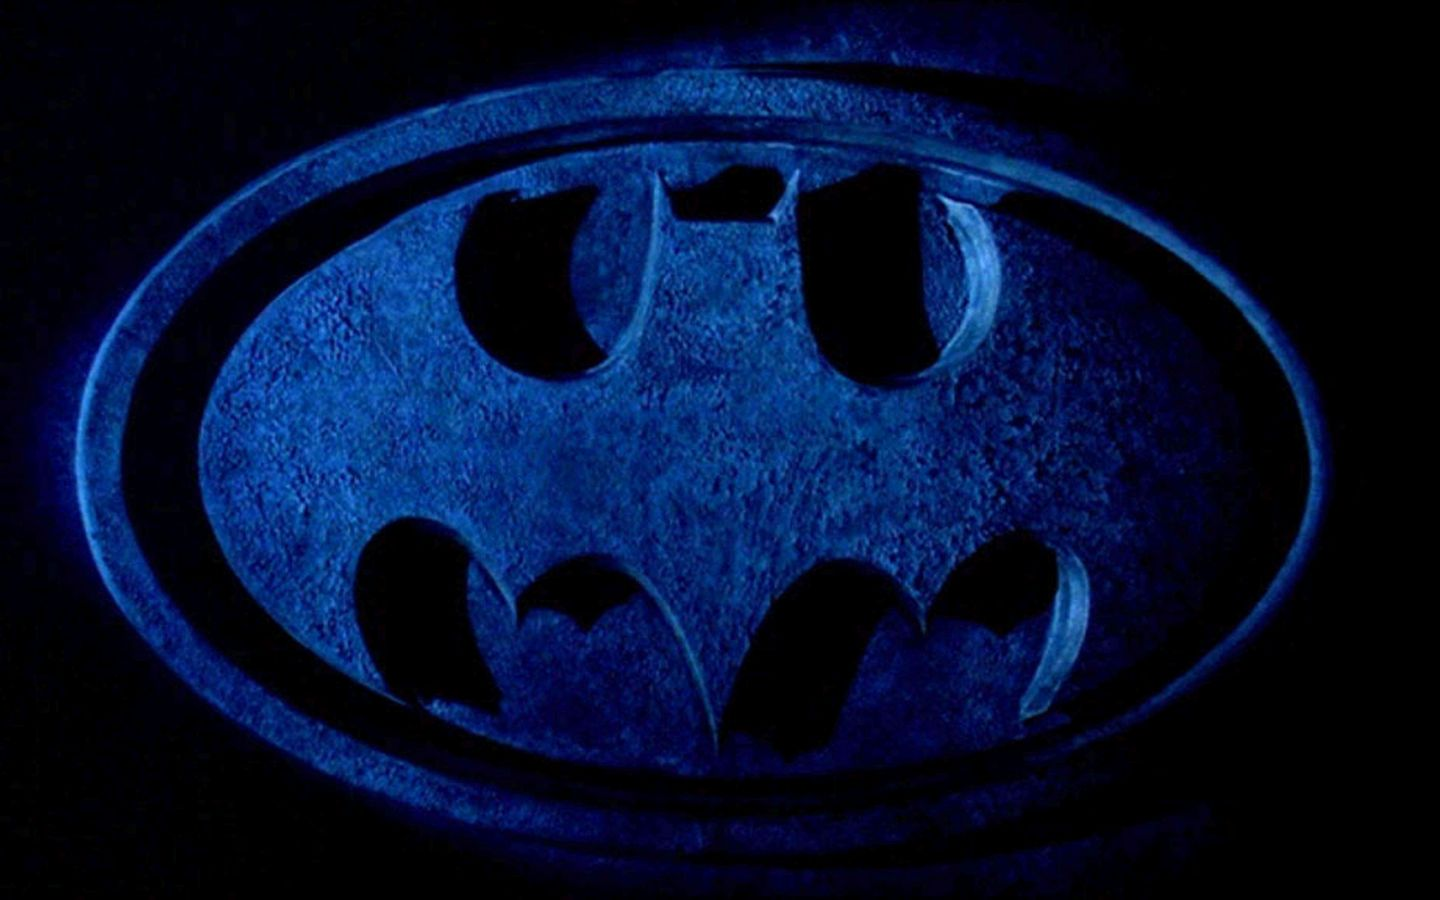 Batman Logo Wallpaper 1440x900